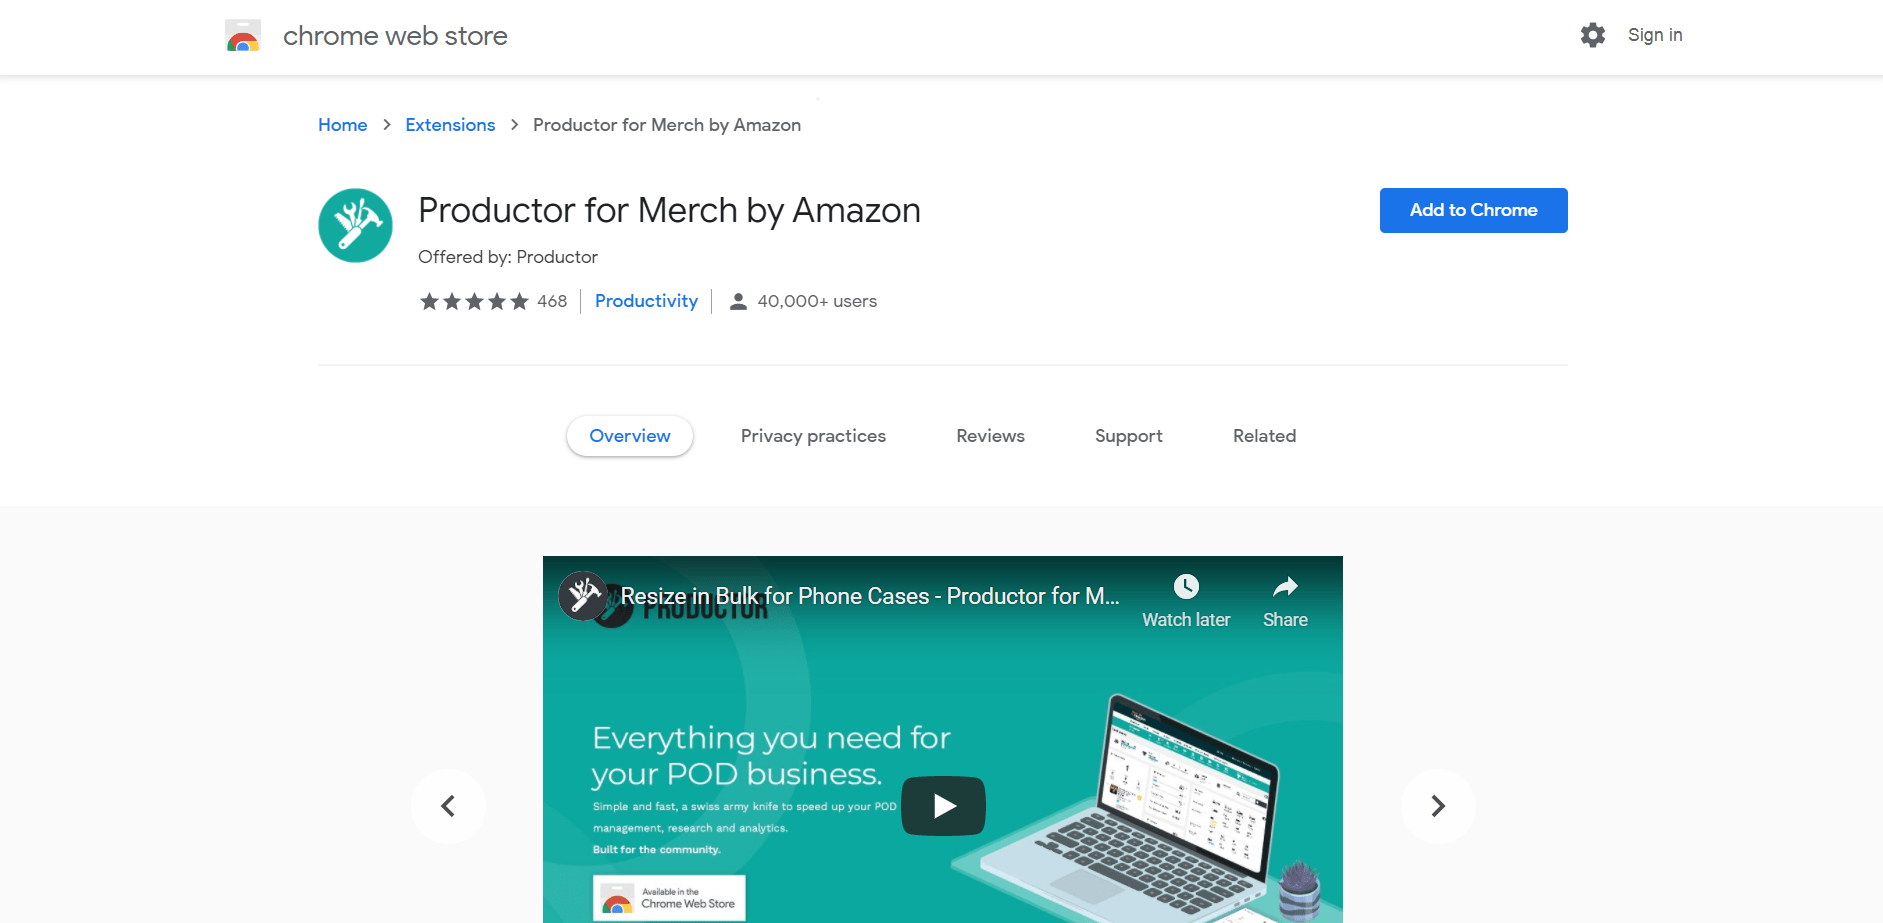 Productor for Merch by Amazon